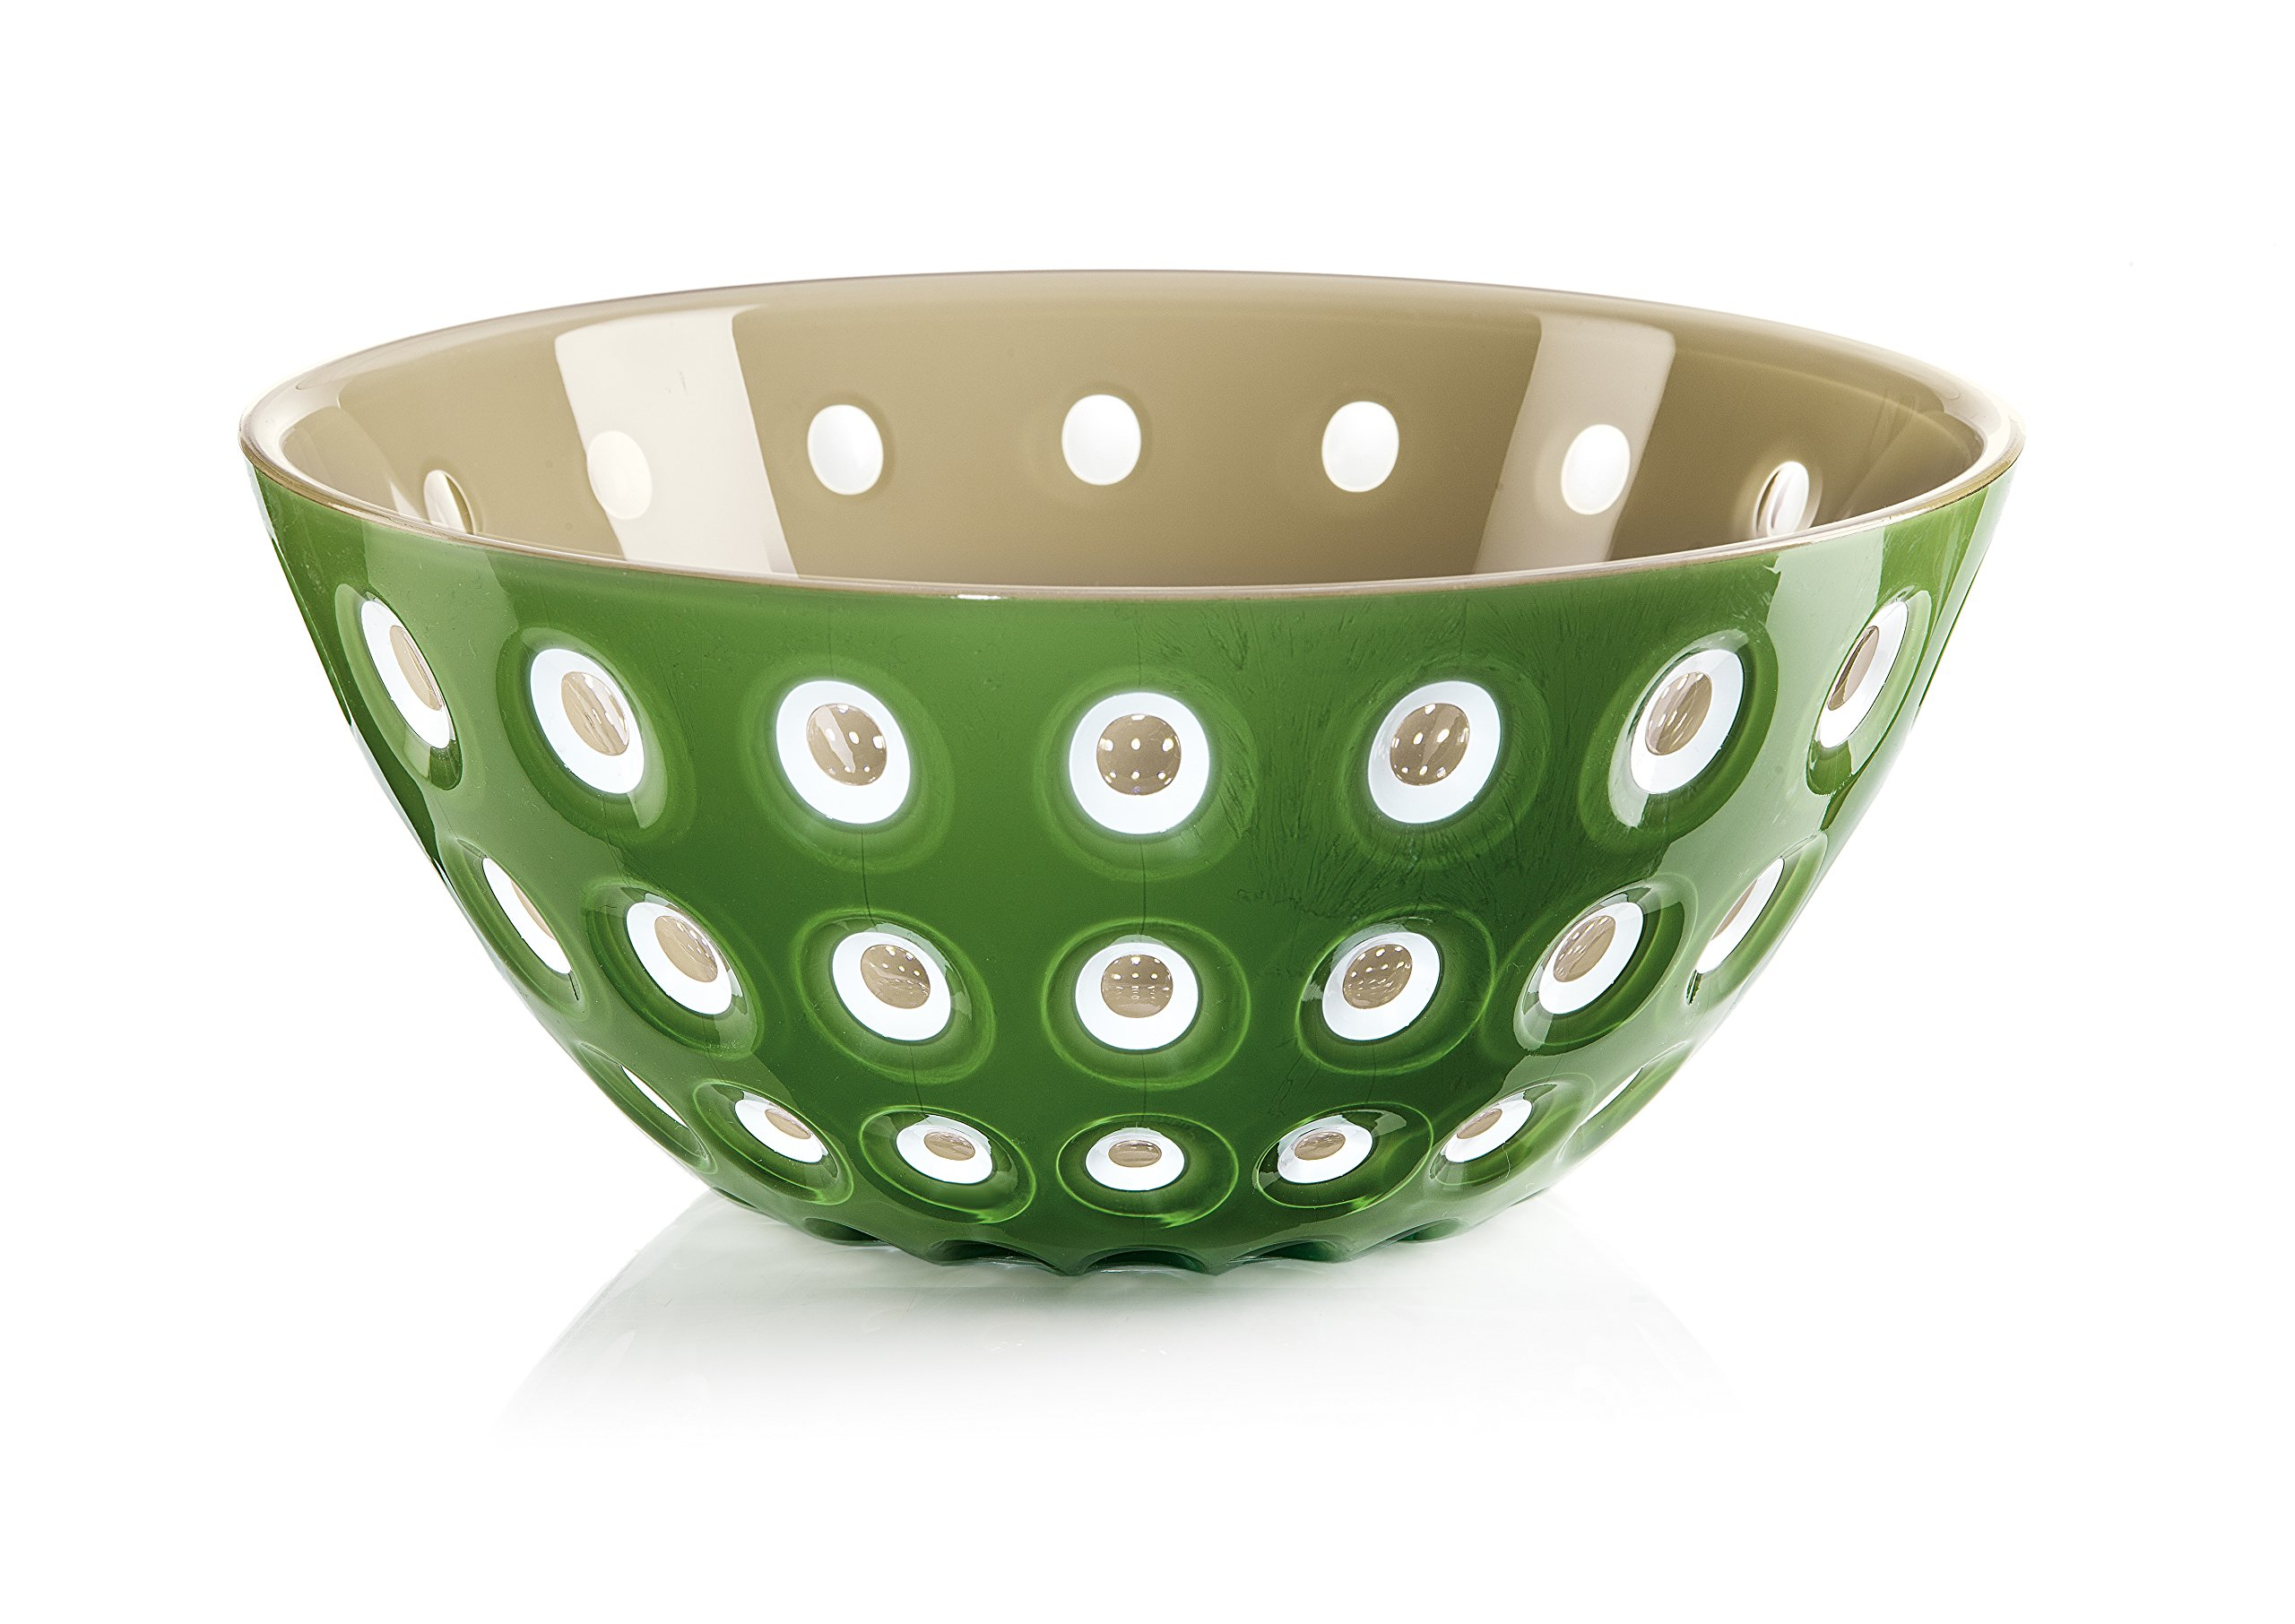 Guzzini Le Murrine Bowl, 9-3/4'' x 4-1/4'', Unique Serving Dish or Centerpiece, 91-Fluid Ounces, Made in Italy, Sand, White, Moss Green